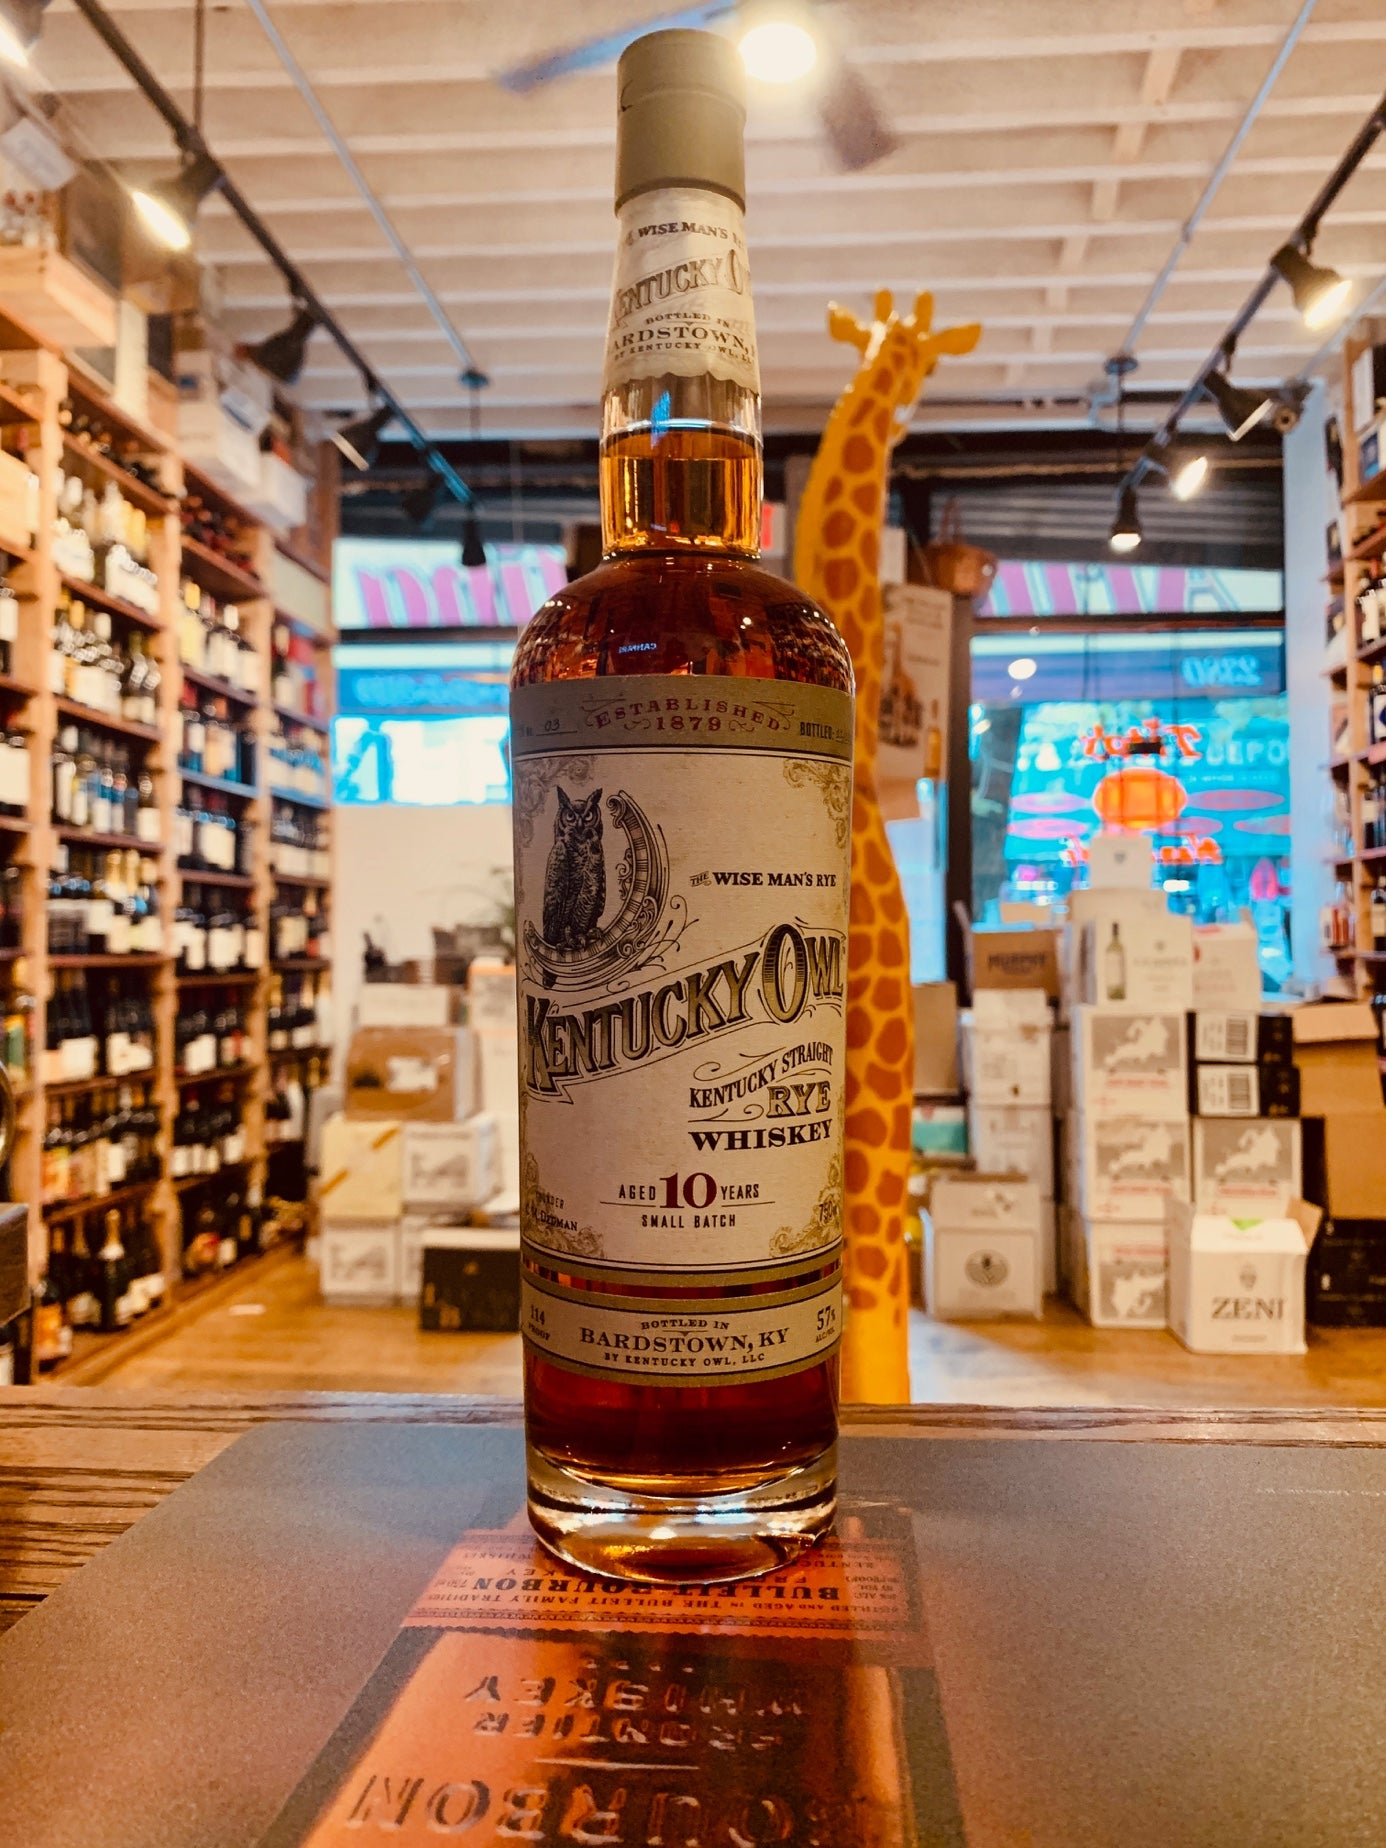 Kentucky Owl Straight Rye 750mL